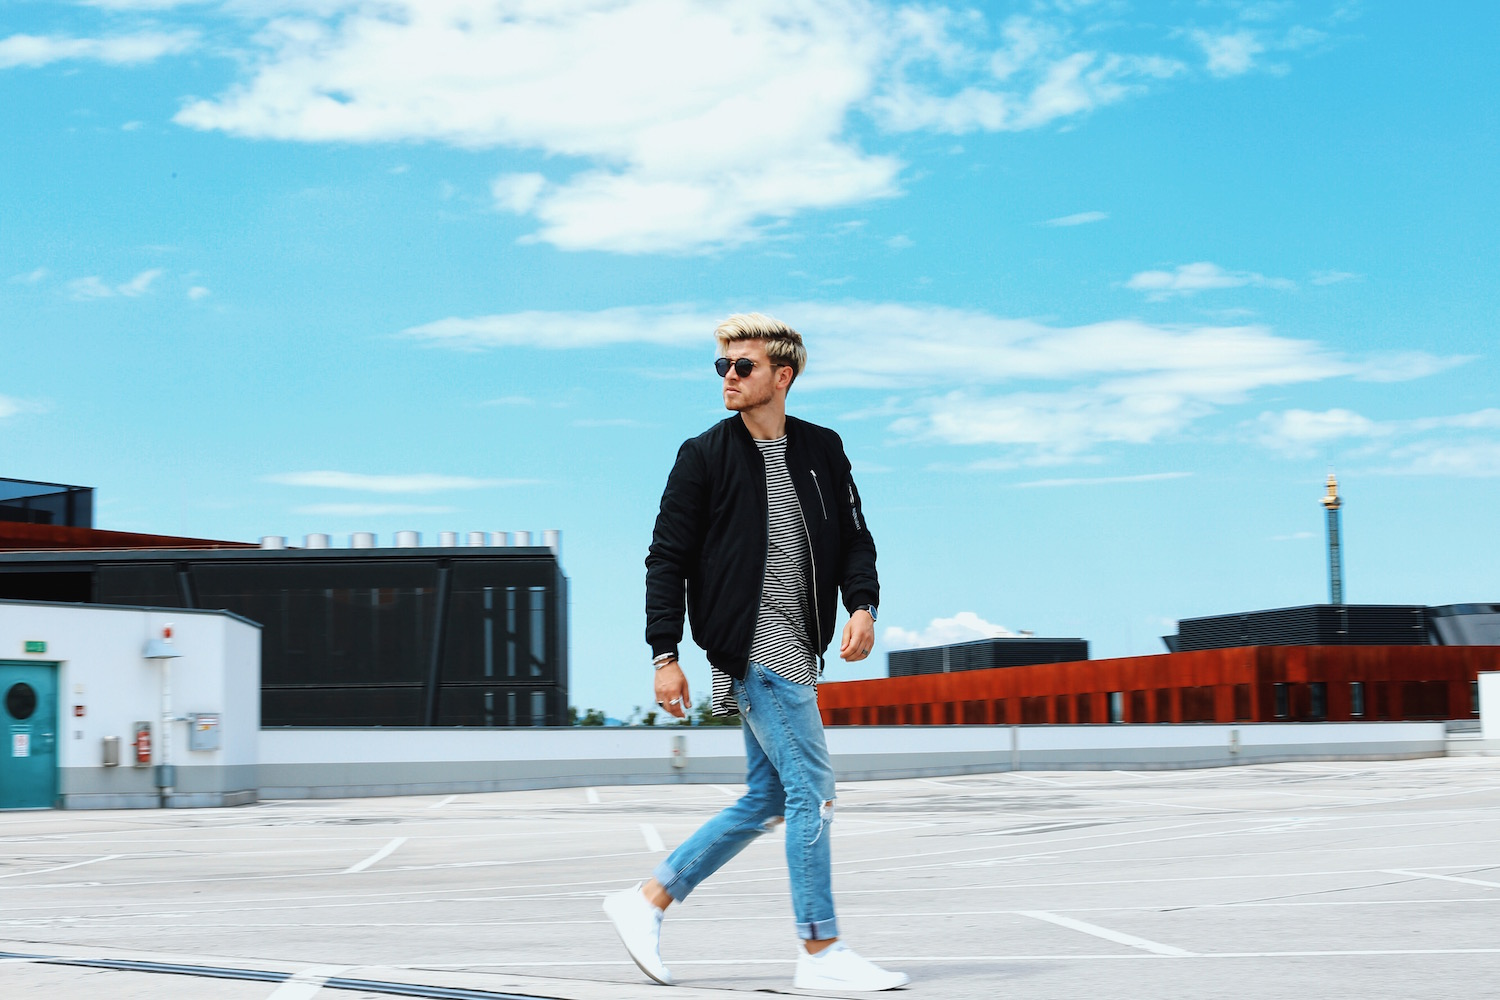 Outfit: Urban Bomber Jacket Streetstyle with Midnight Co